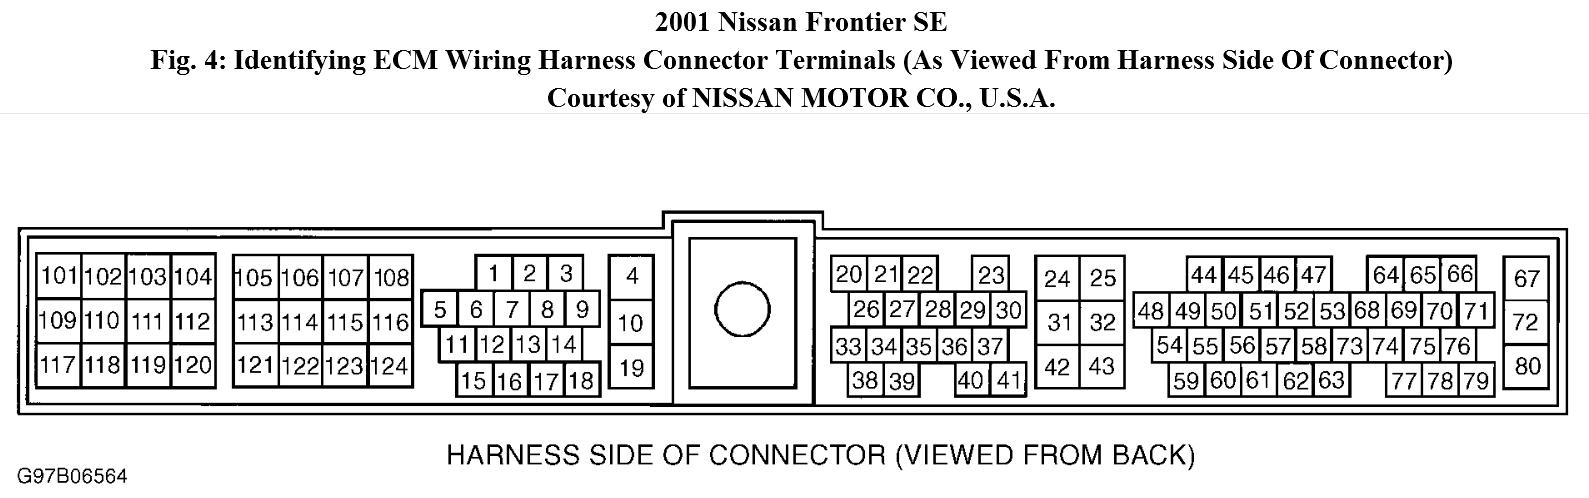 Nissan Frontier Ecm Diagram Worksheet And Wiring Trailer I Have A 2001 Se Xe W 3 3l 6cyl Engine No Rh 2carpros Com